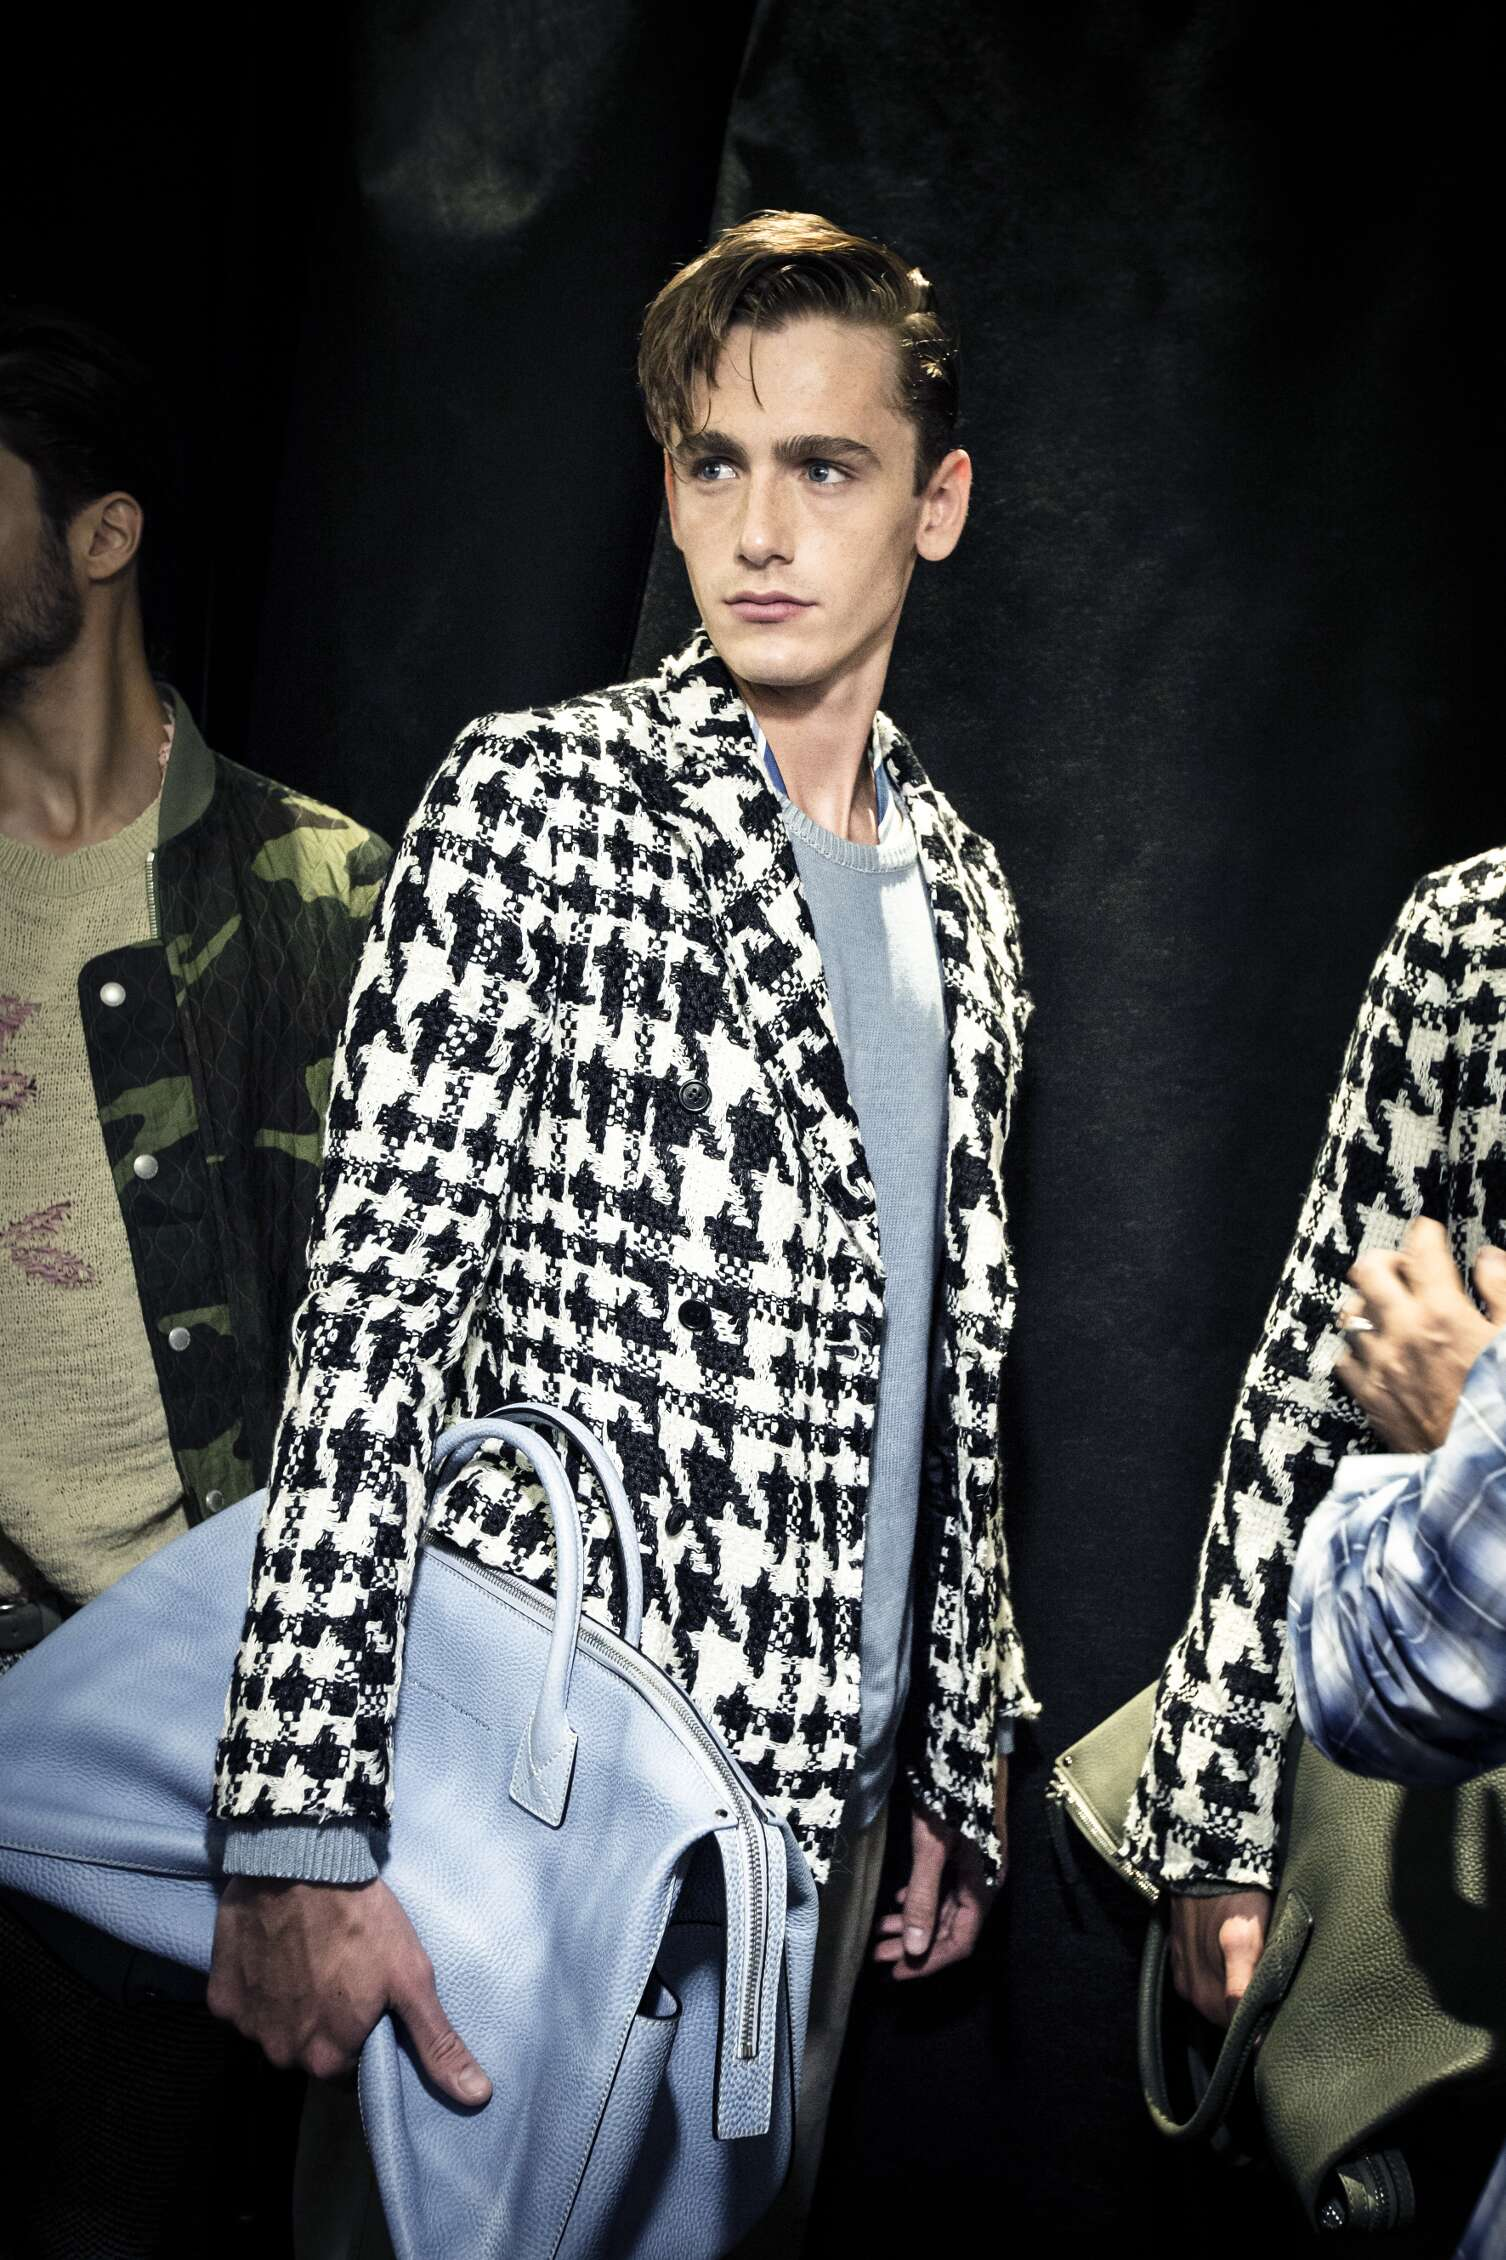 Backstage Ermanno Scervino Model Milan